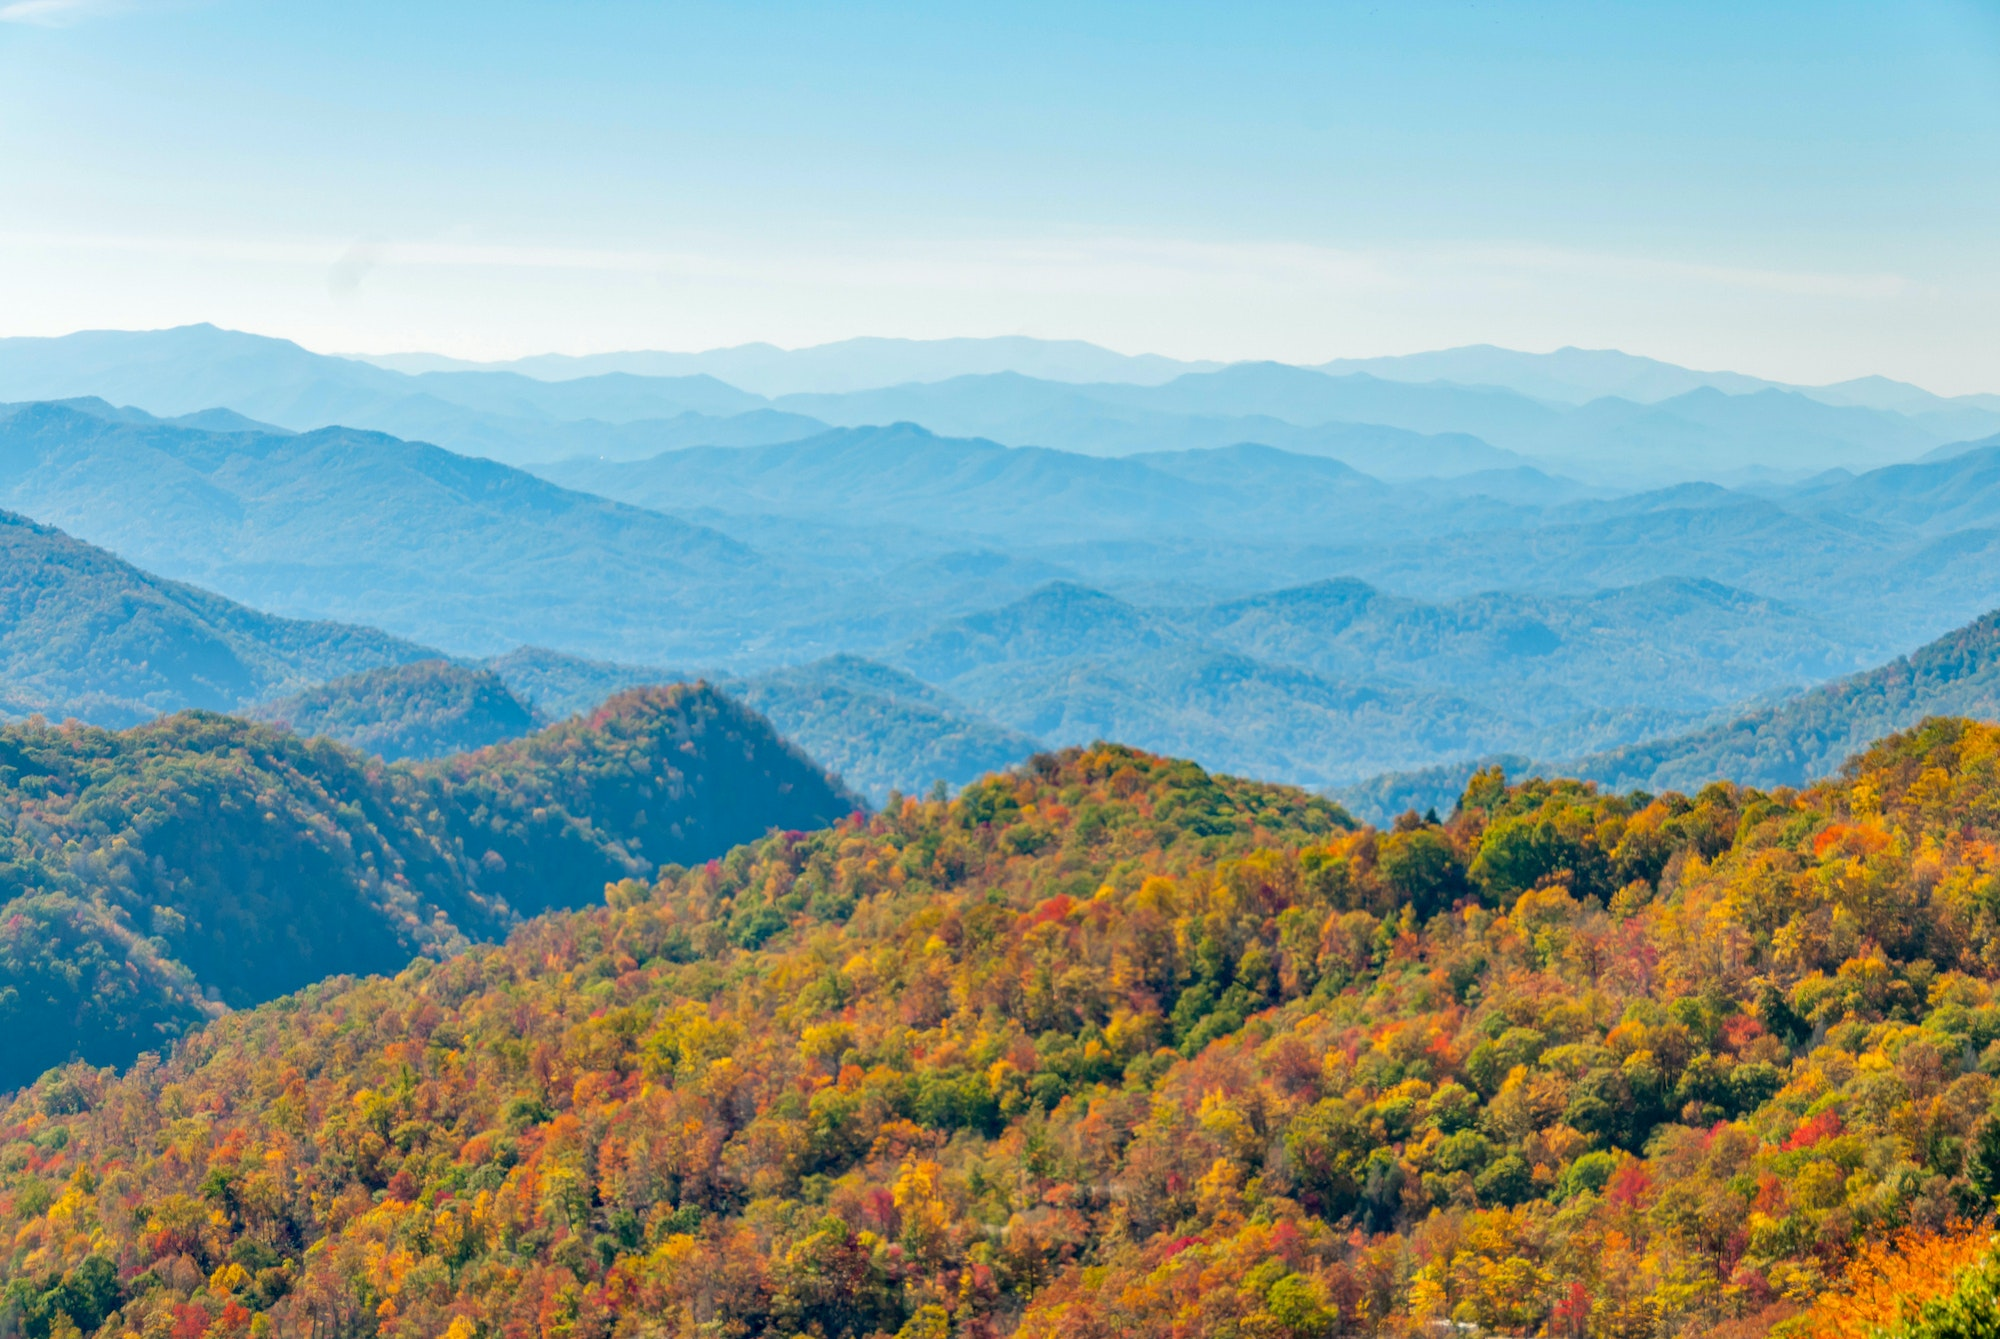 Great Smoky Mountains National Park straddles the border between North Carolina and Tennessee.